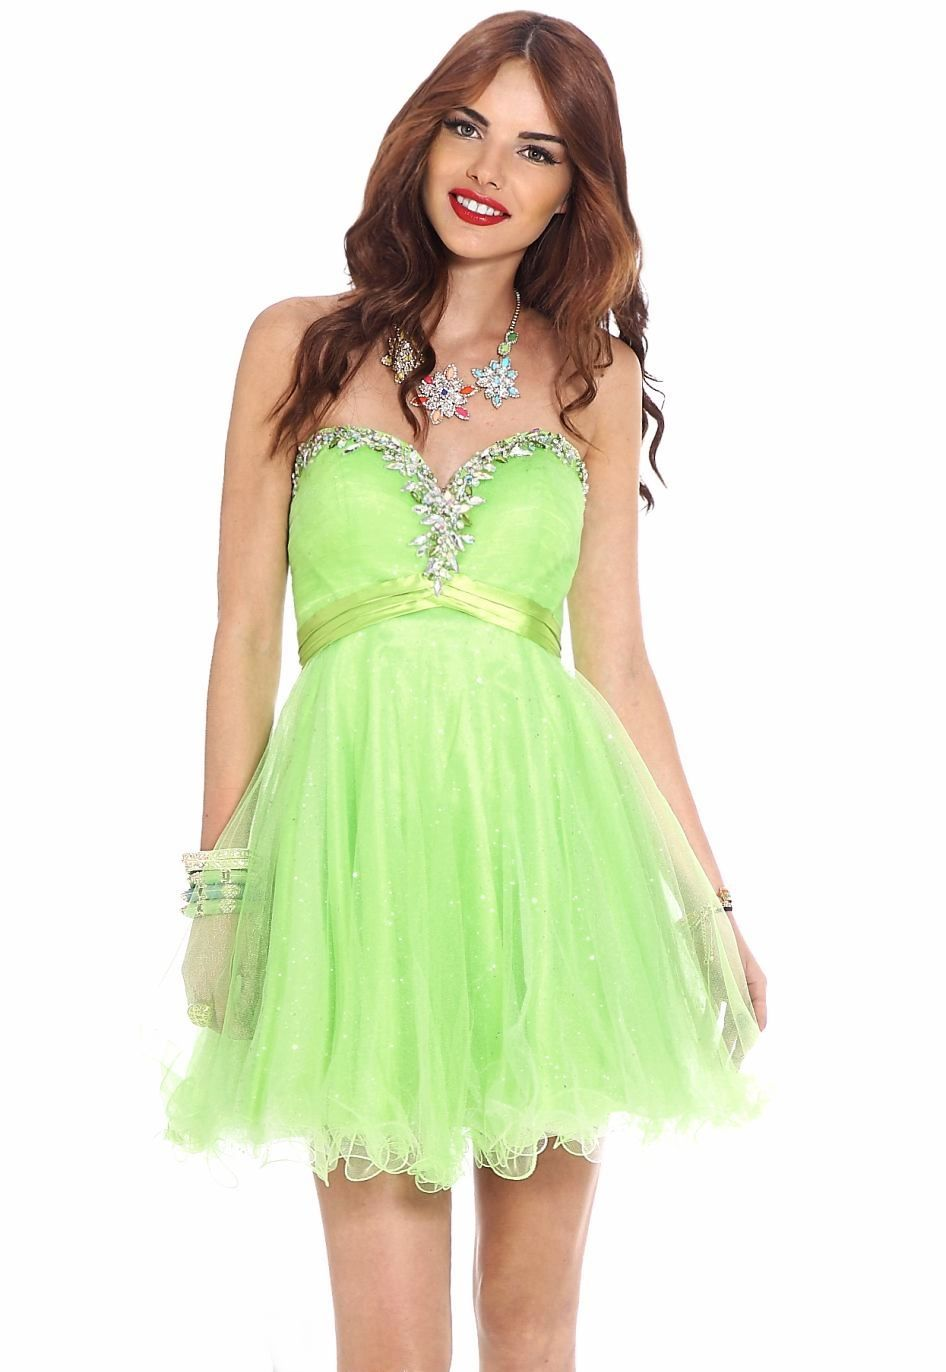 Lime mini dress with embellished sweetheart neckline by clarisse